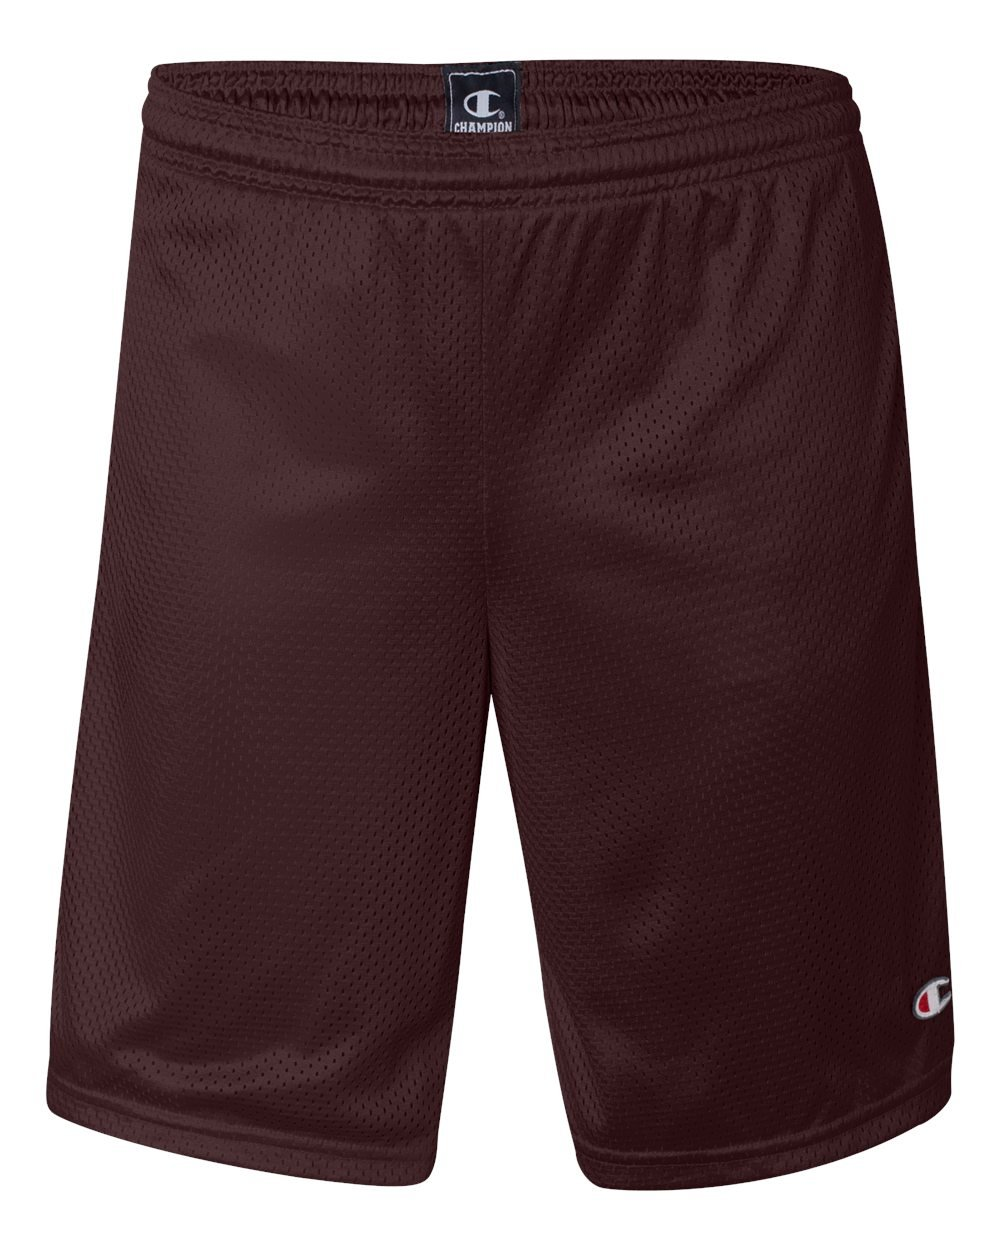 Champion Men's Long Mesh Short with